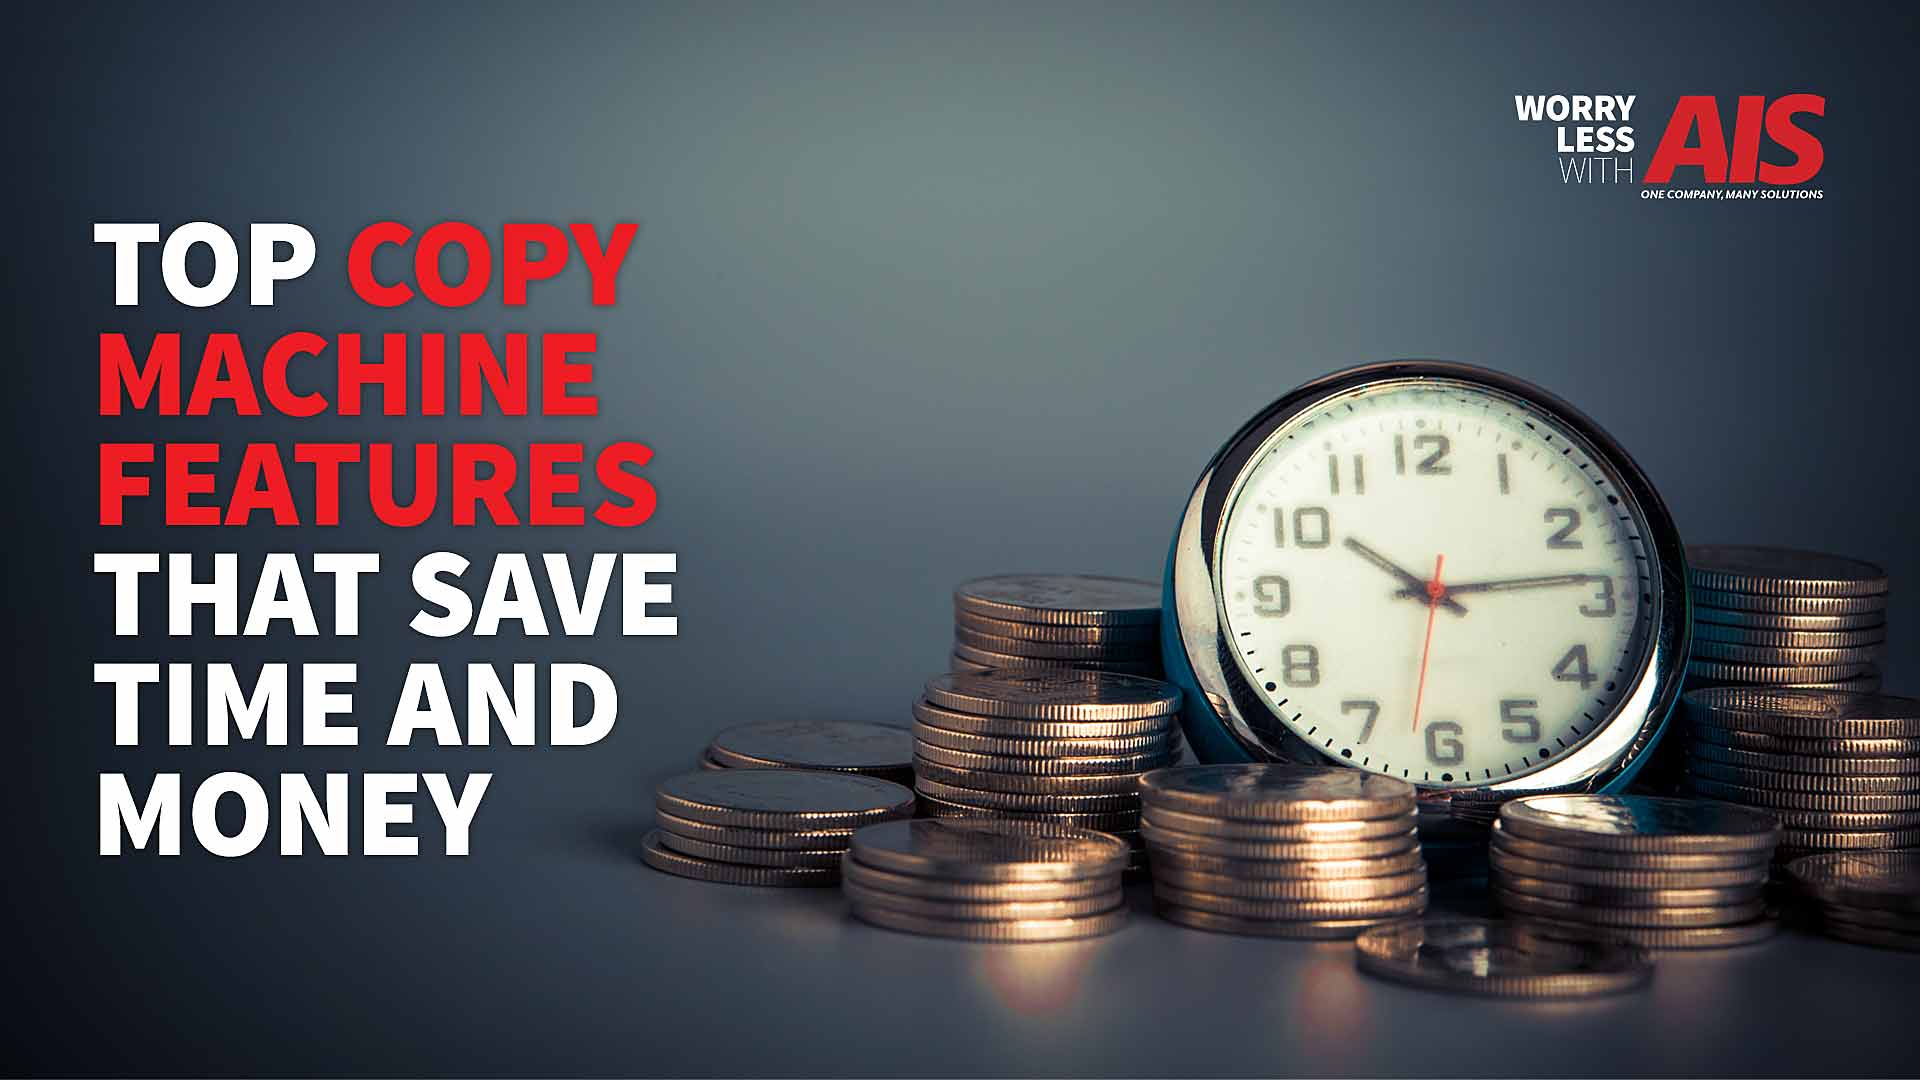 opy-machine-features-save-time-money